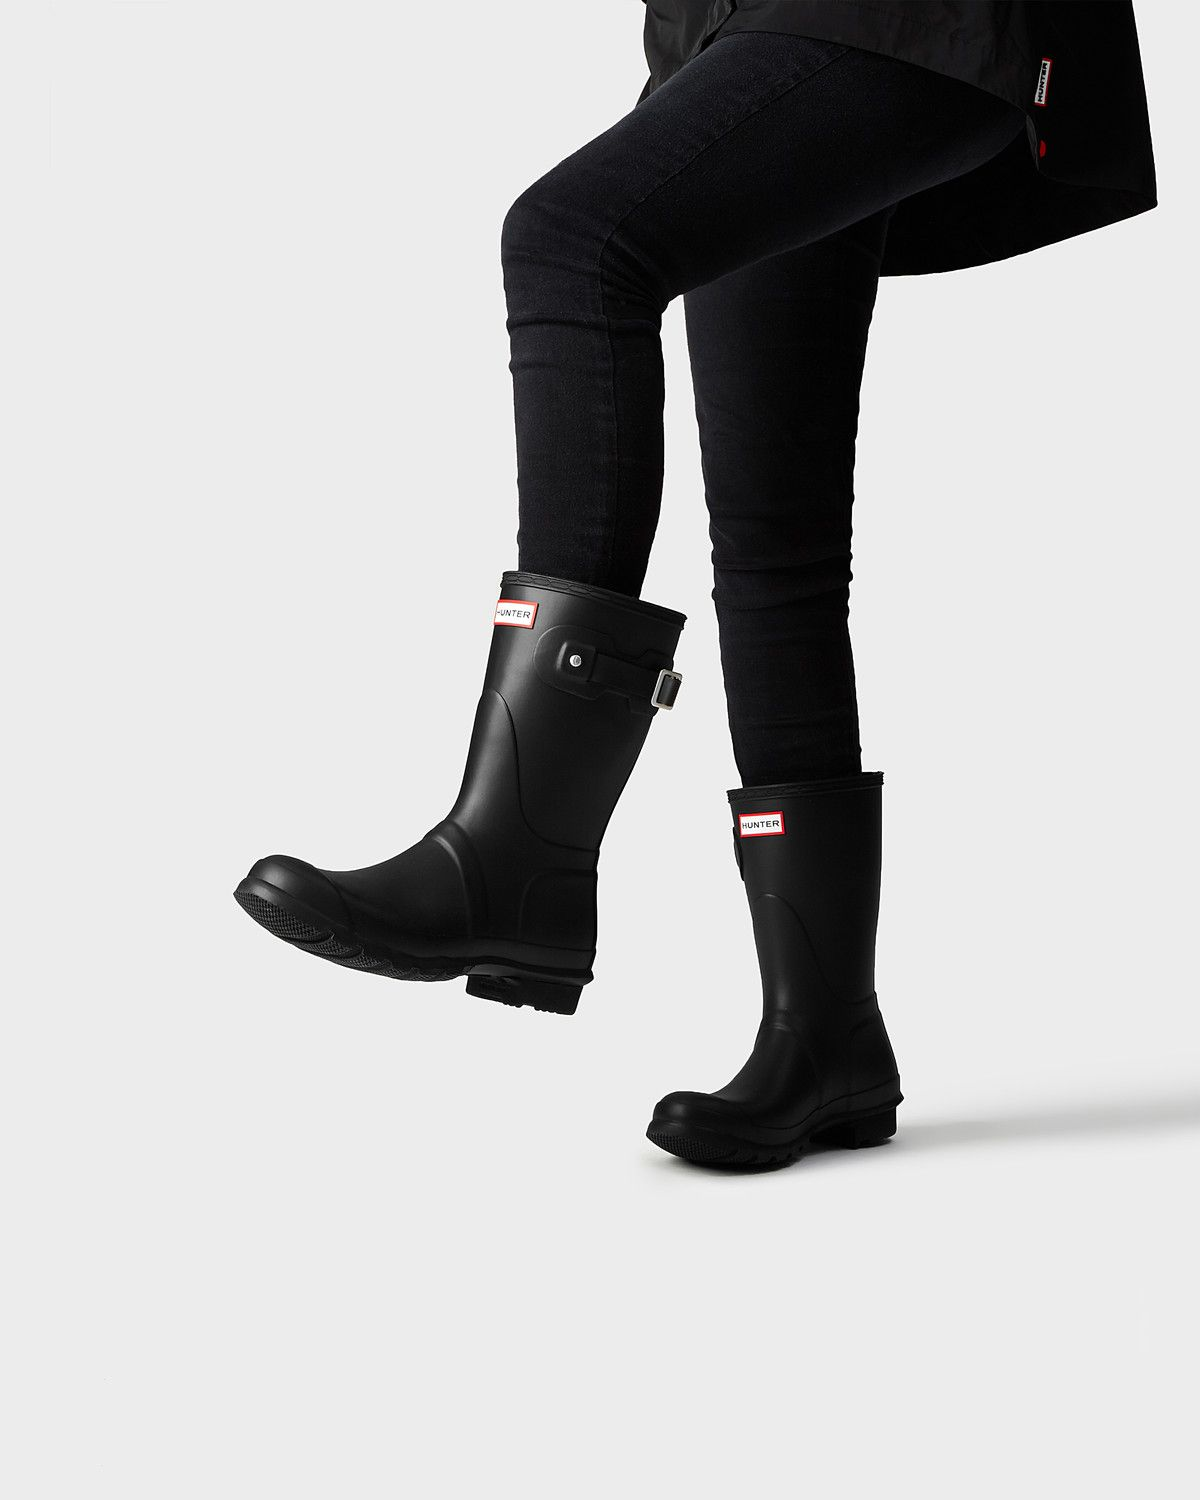 2655ca7a4 all black fashion women's. A short boot handcrafted in the same form as the Original  Tall.